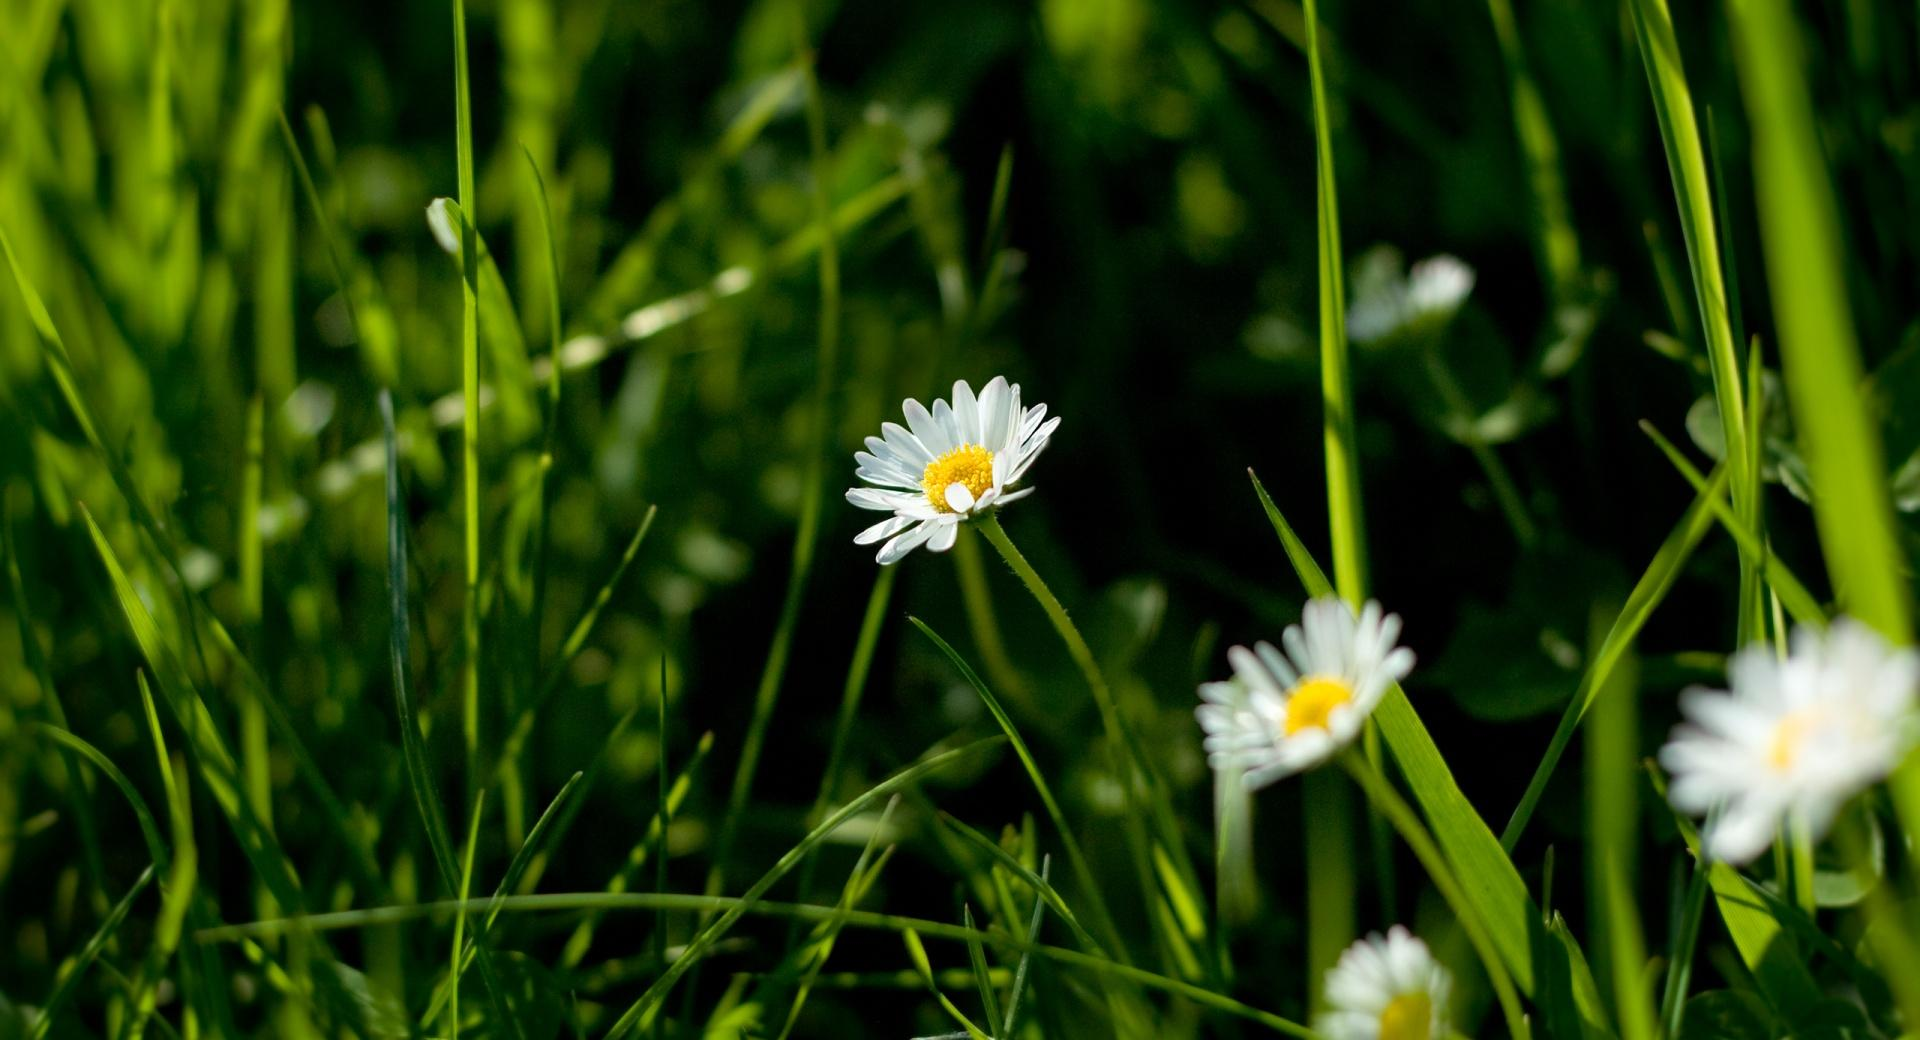 Daisies And Green Grass wallpapers HD quality